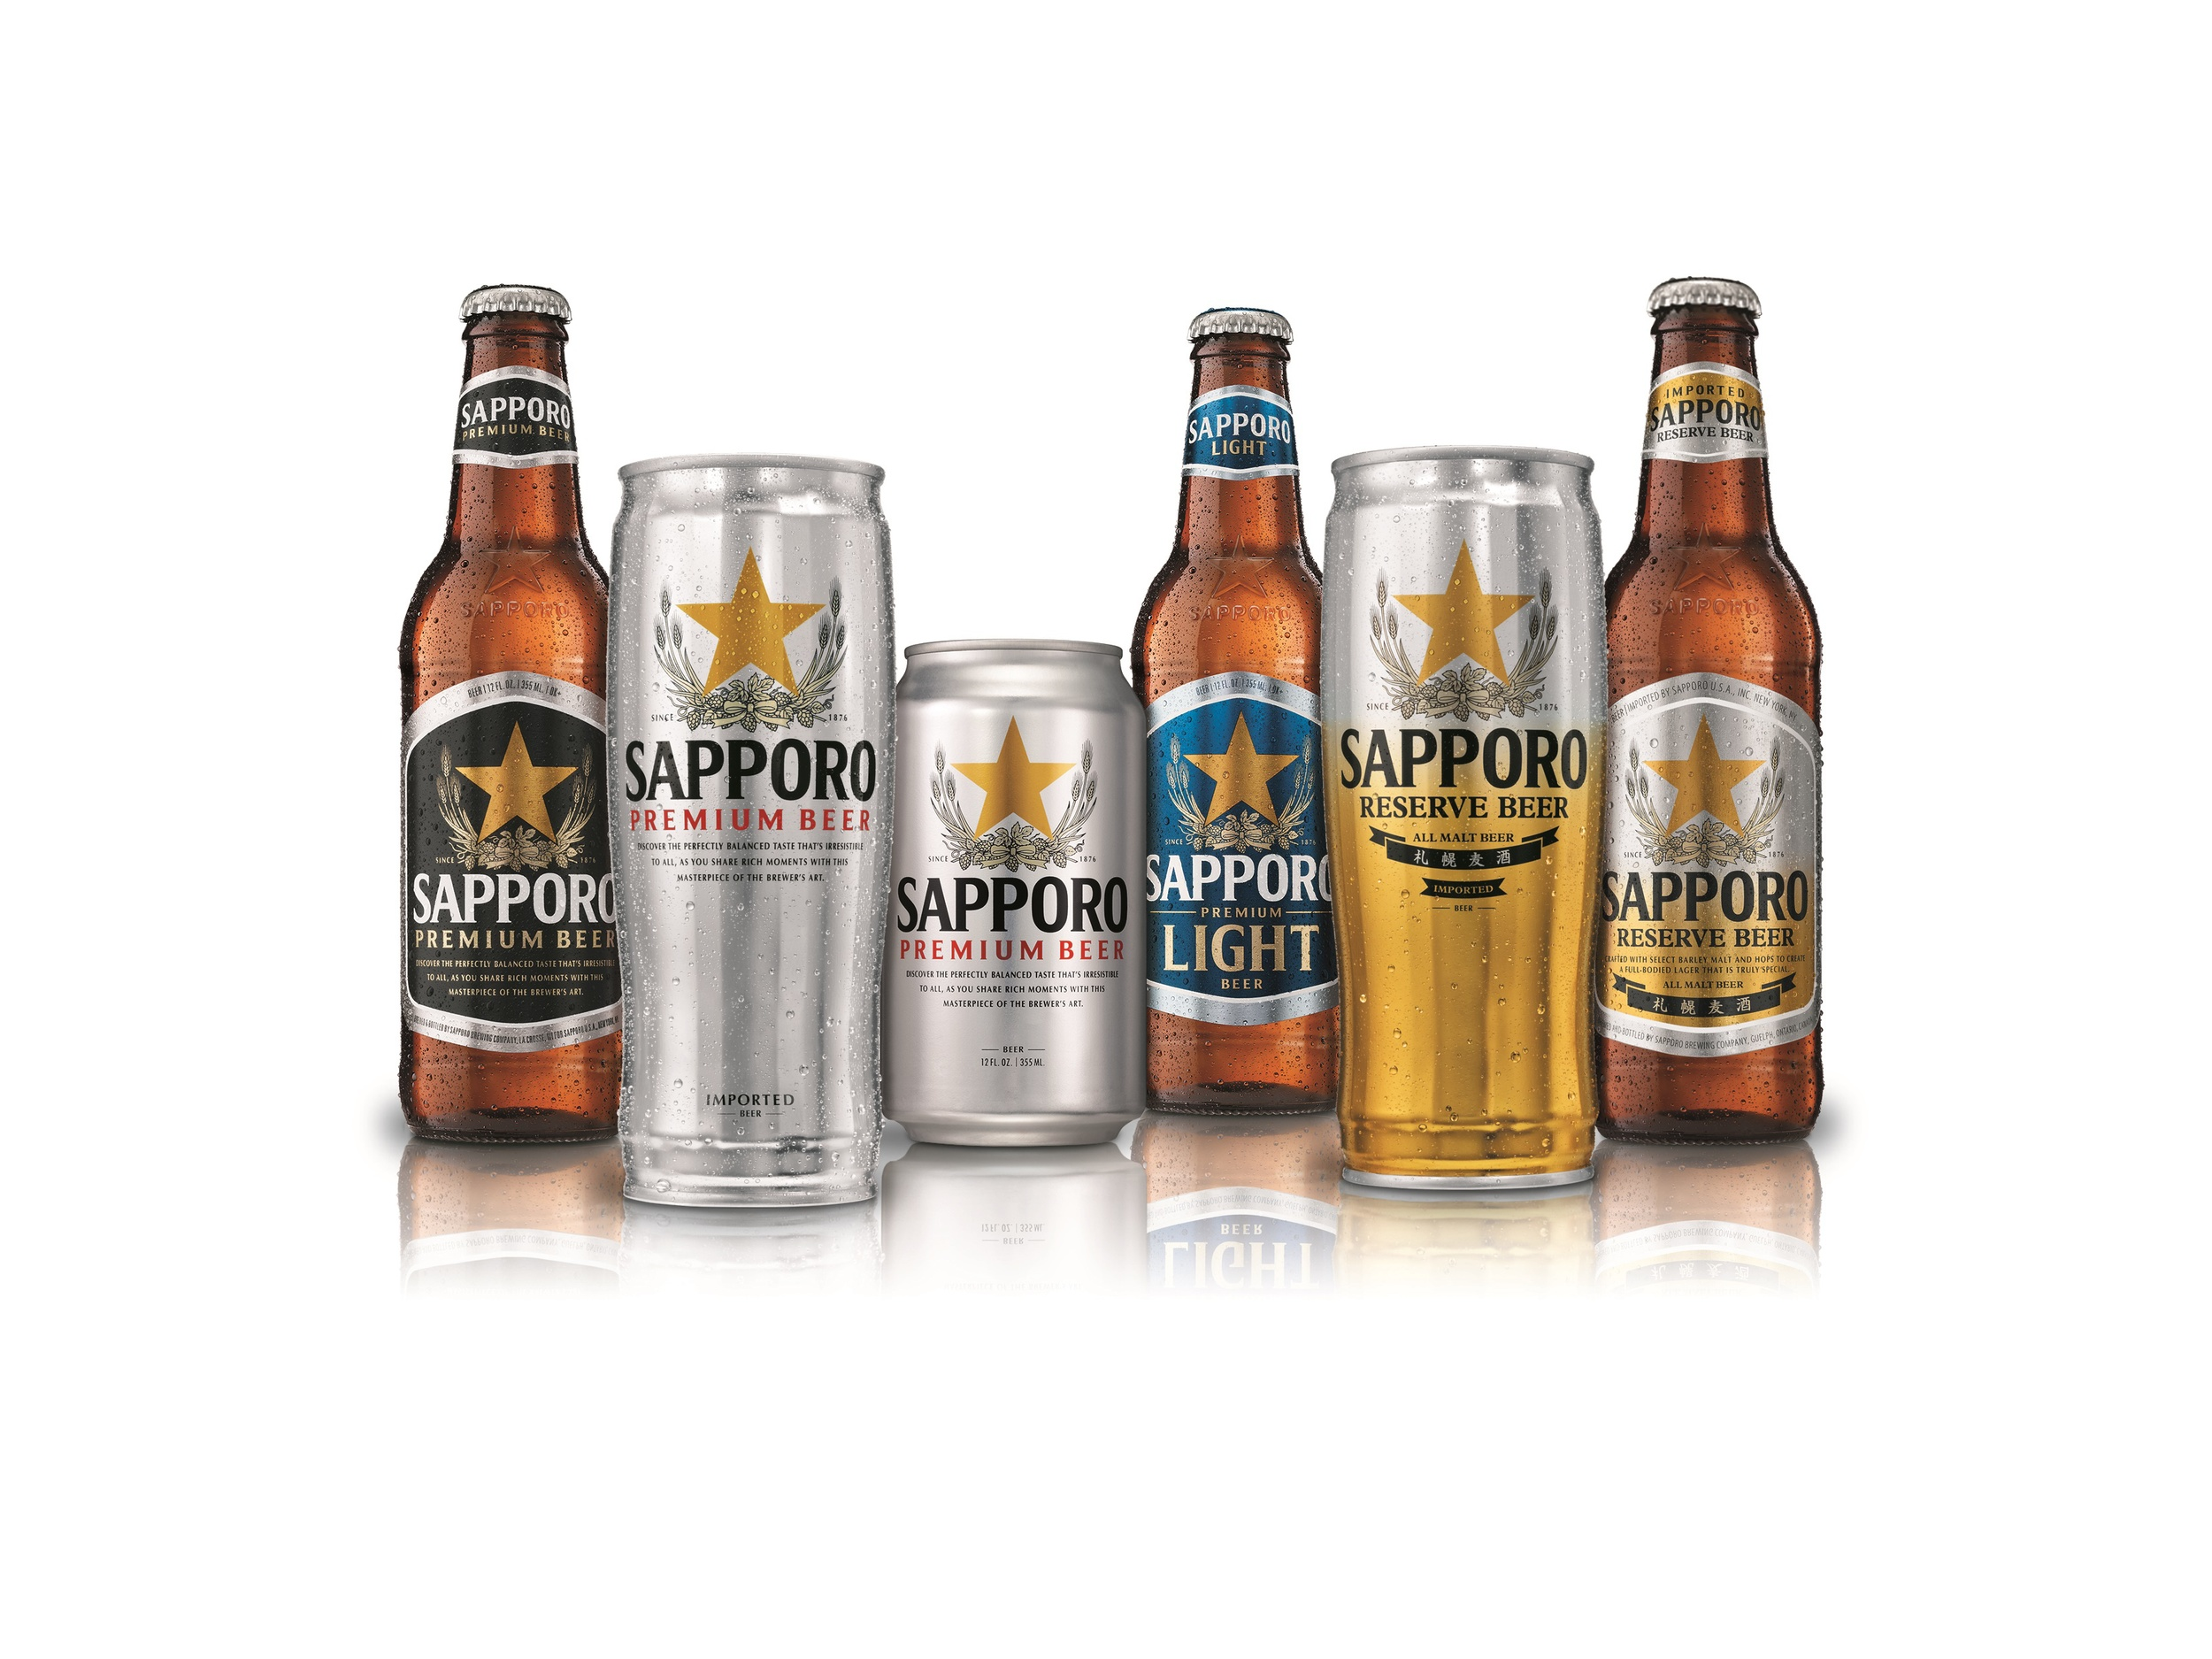 Sponsored: 10 Facts You Should Know About Sapporo Beer